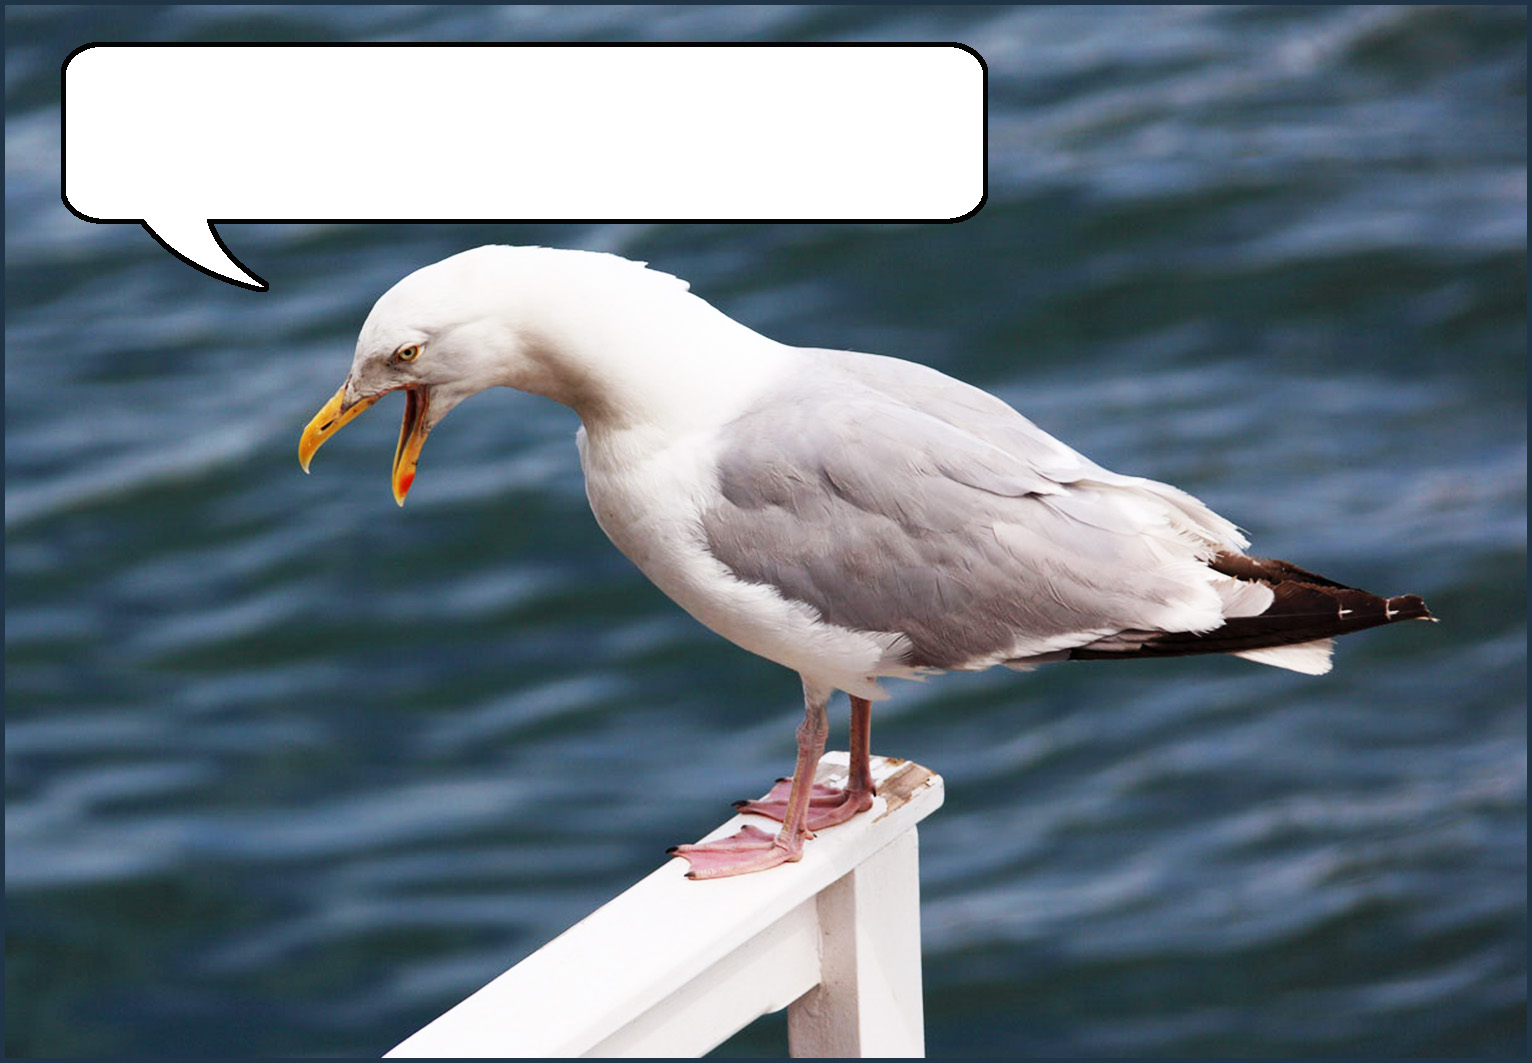 Postcard with sea gull